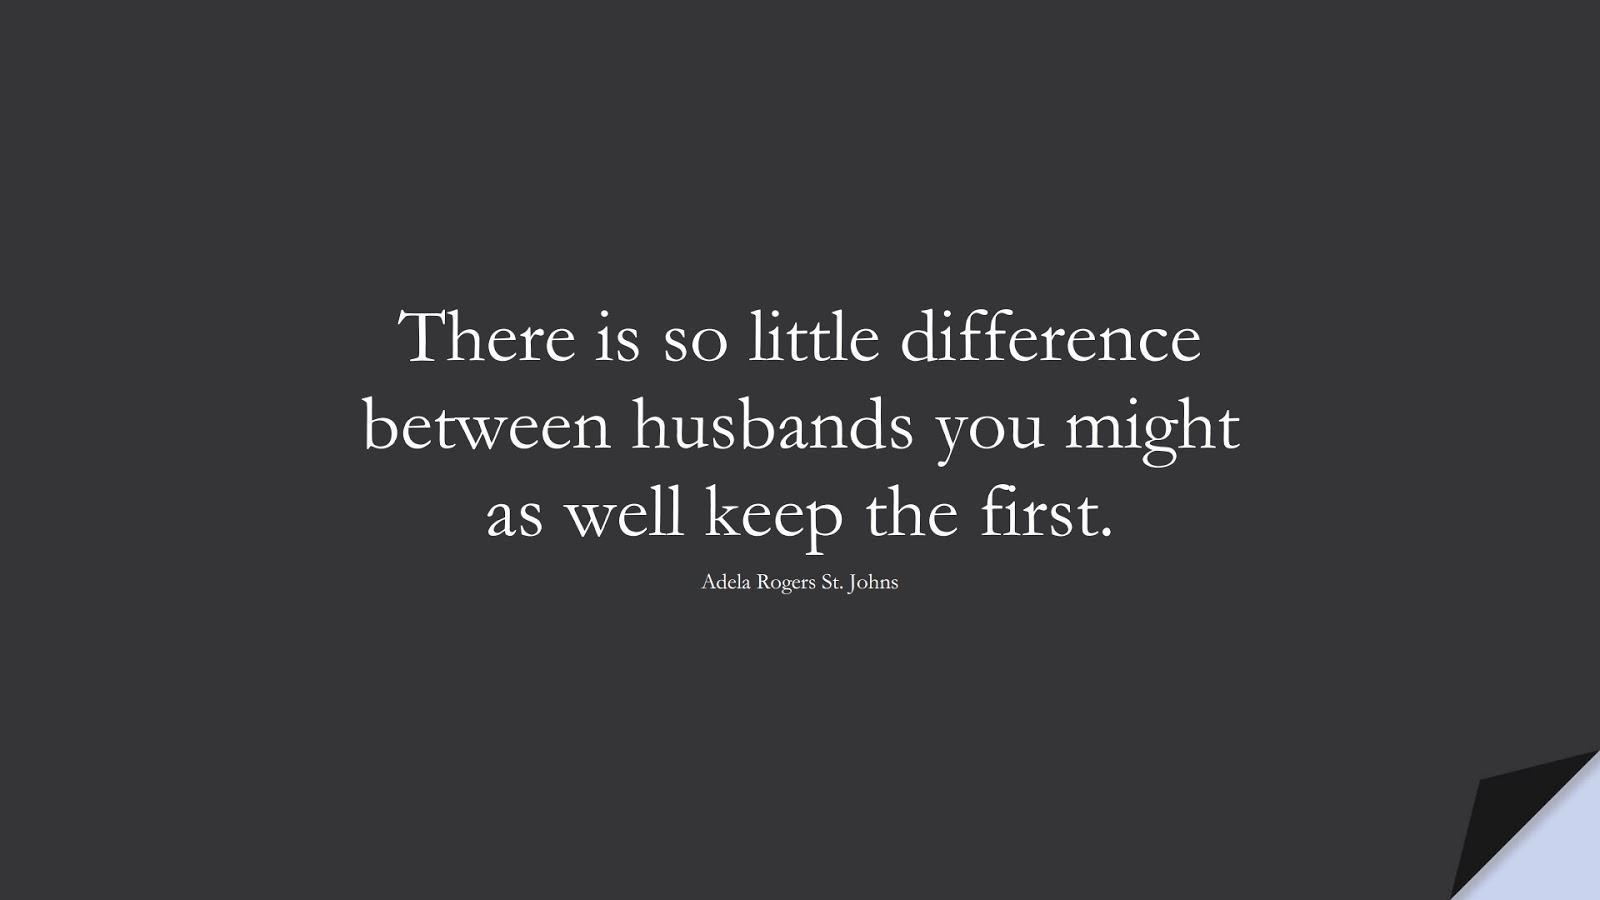 There is so little difference between husbands you might as well keep the first. (Adela Rogers St. Johns);  #RelationshipQuotes